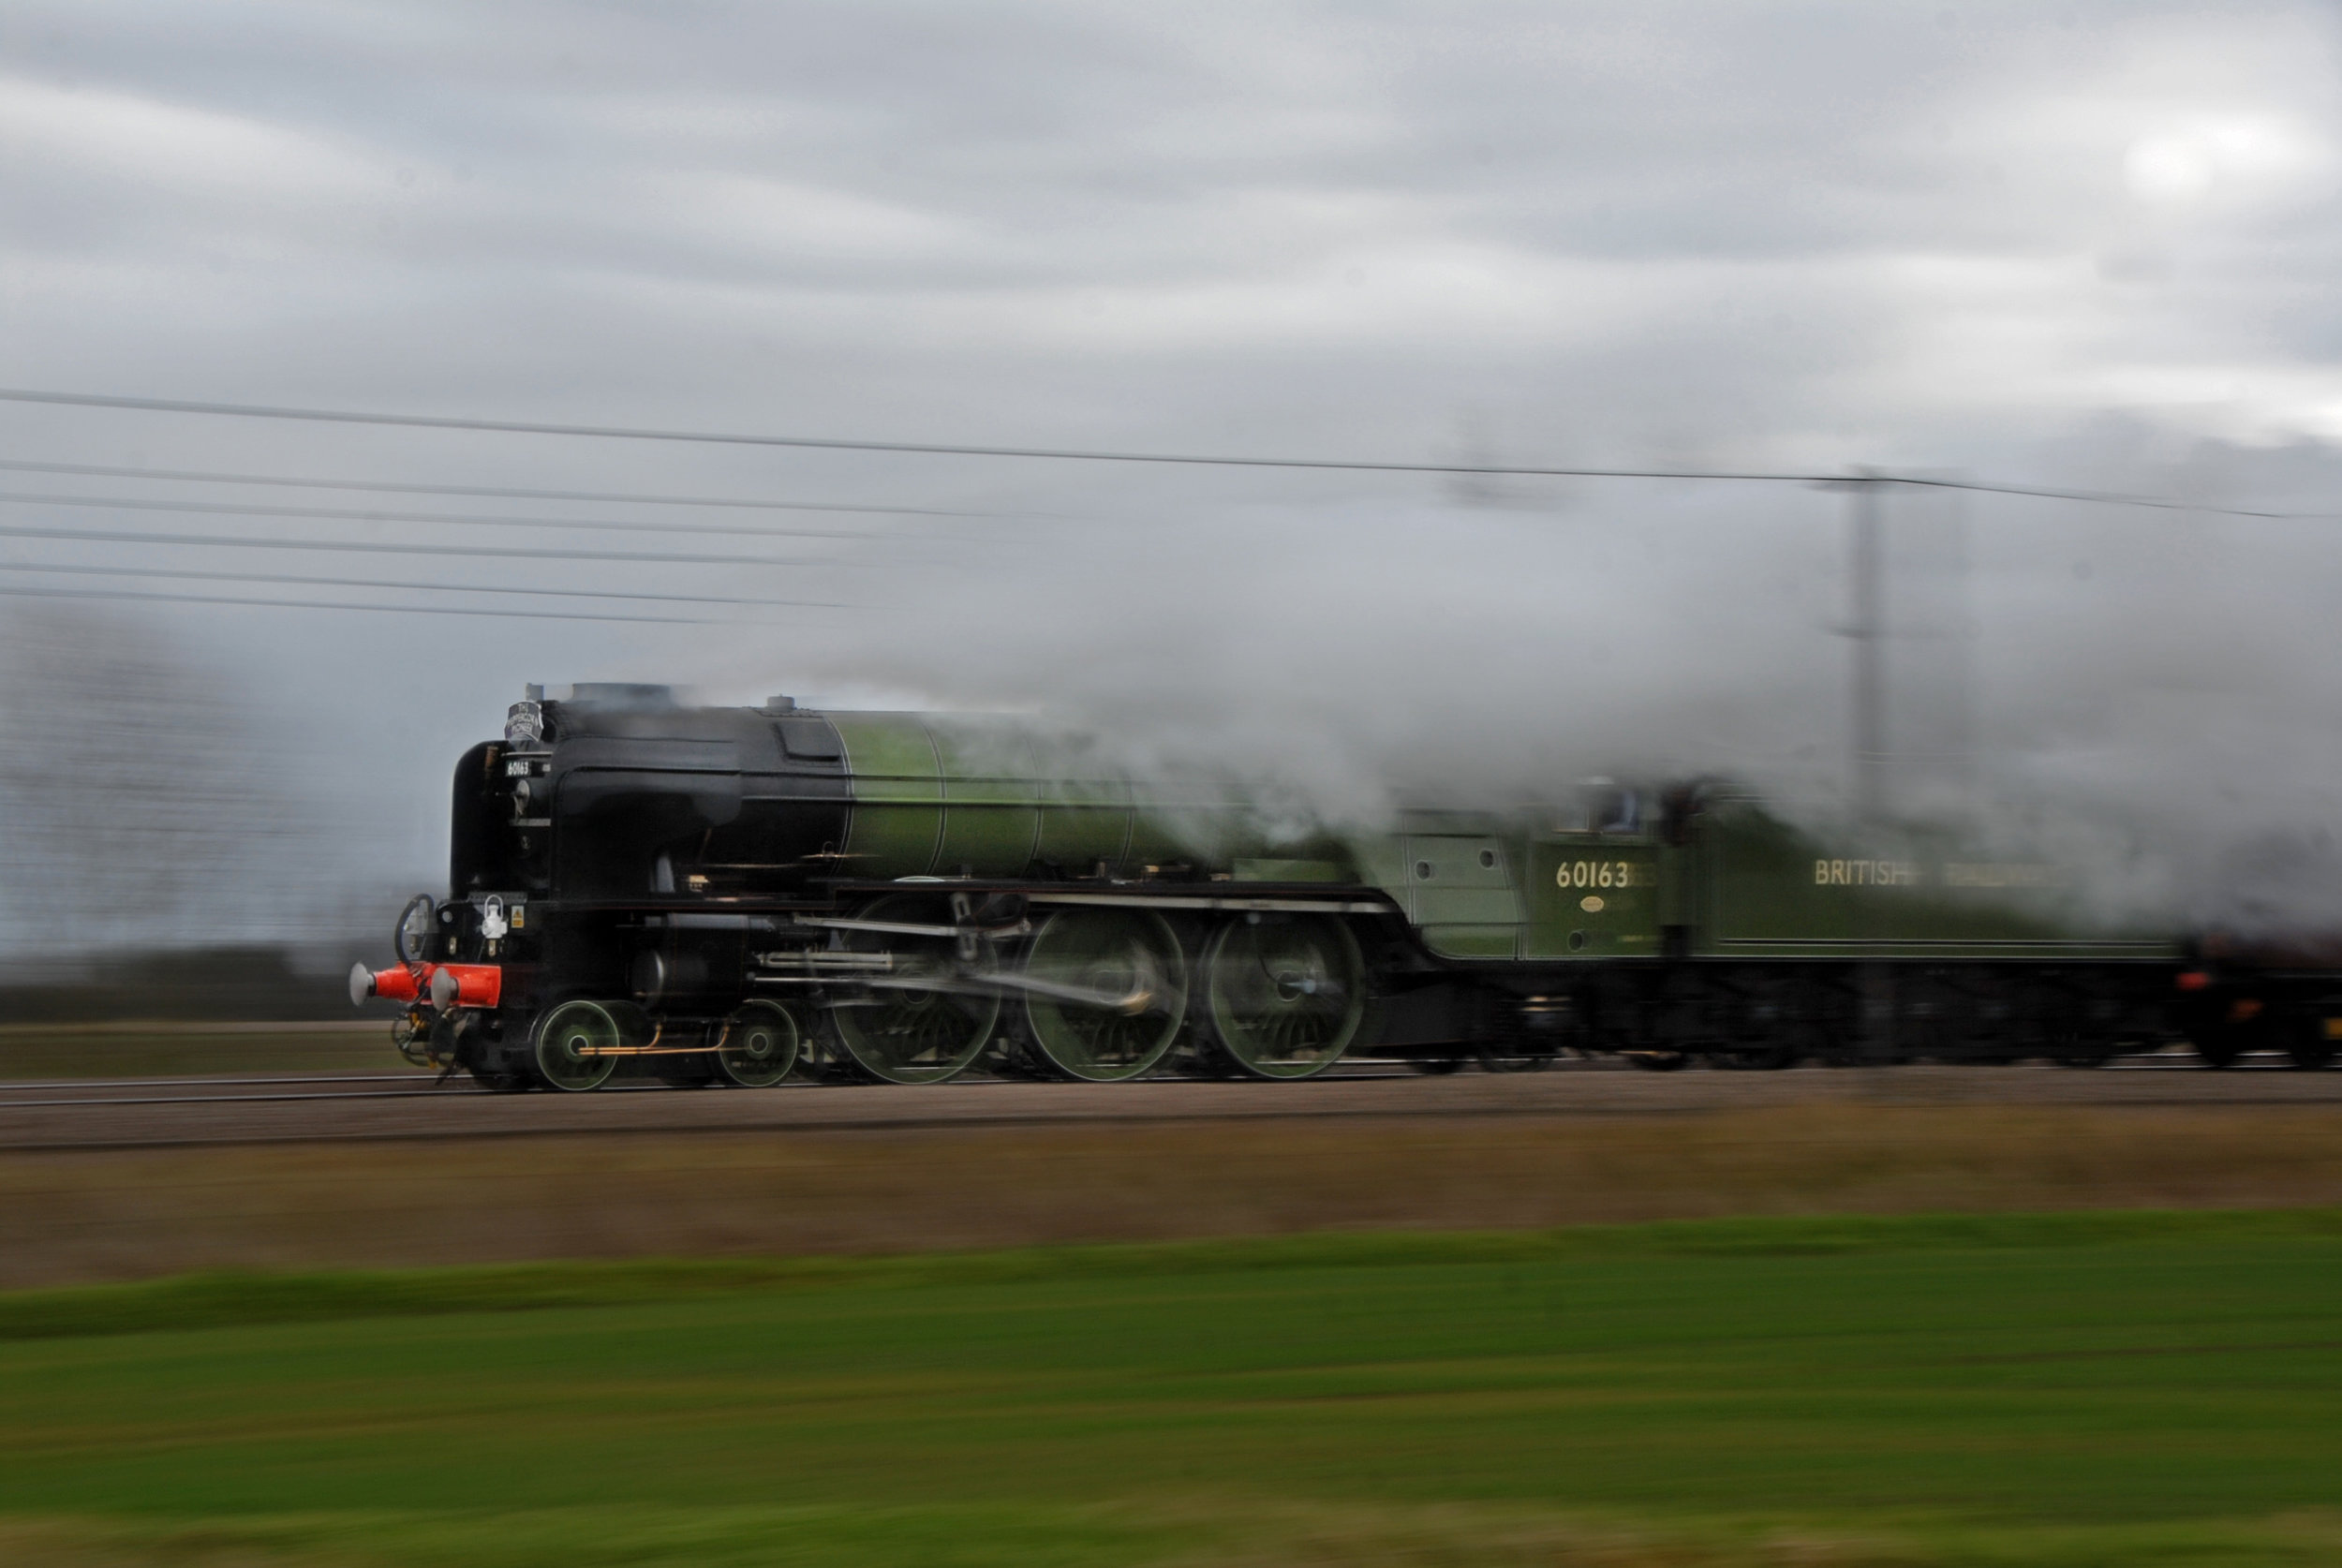 New-build 'A1' No. 60163  Tornado - the first British steam locomotive to officially do 100mph since 1967 -at speed. ROBIN COOMBES